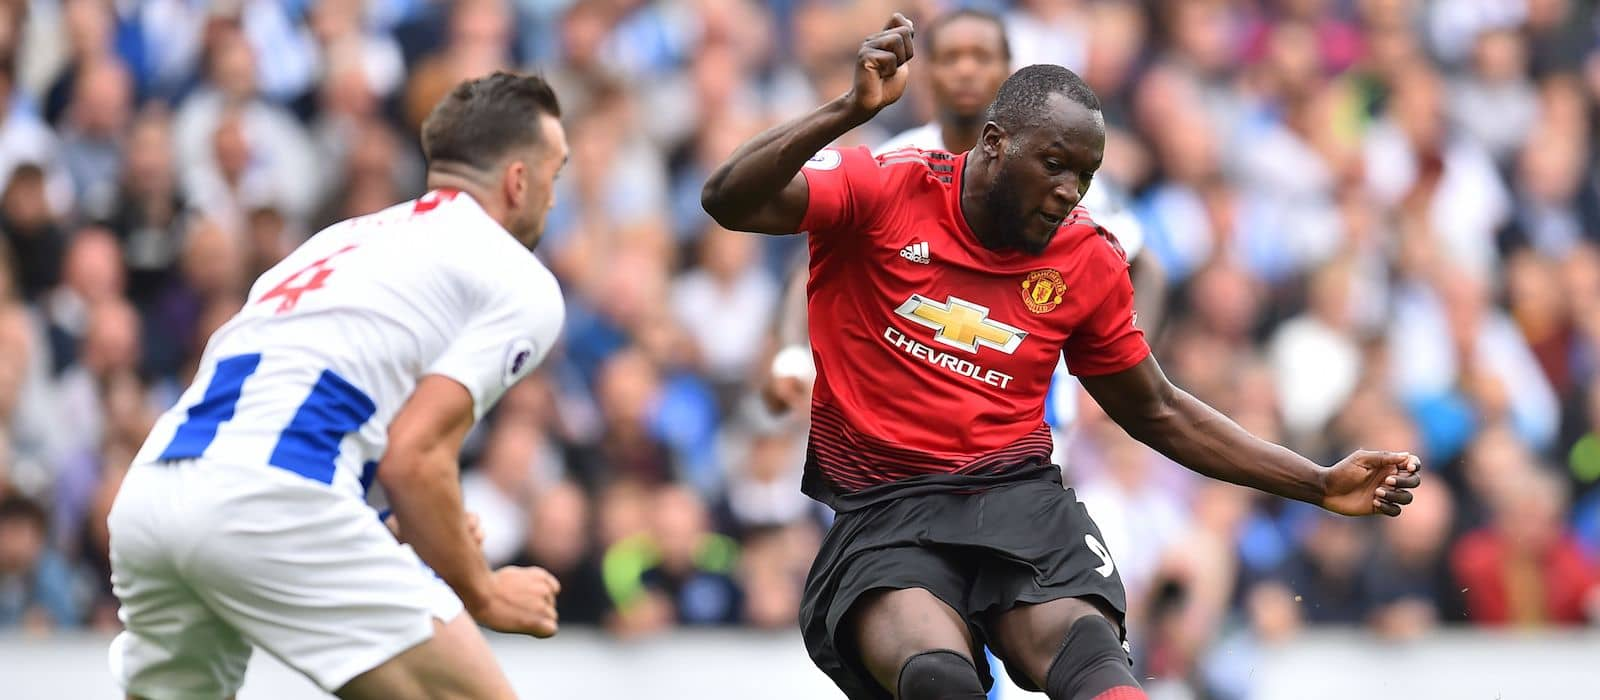 Fulham vs Manchester United: Potential XI without Romelu Lukaku